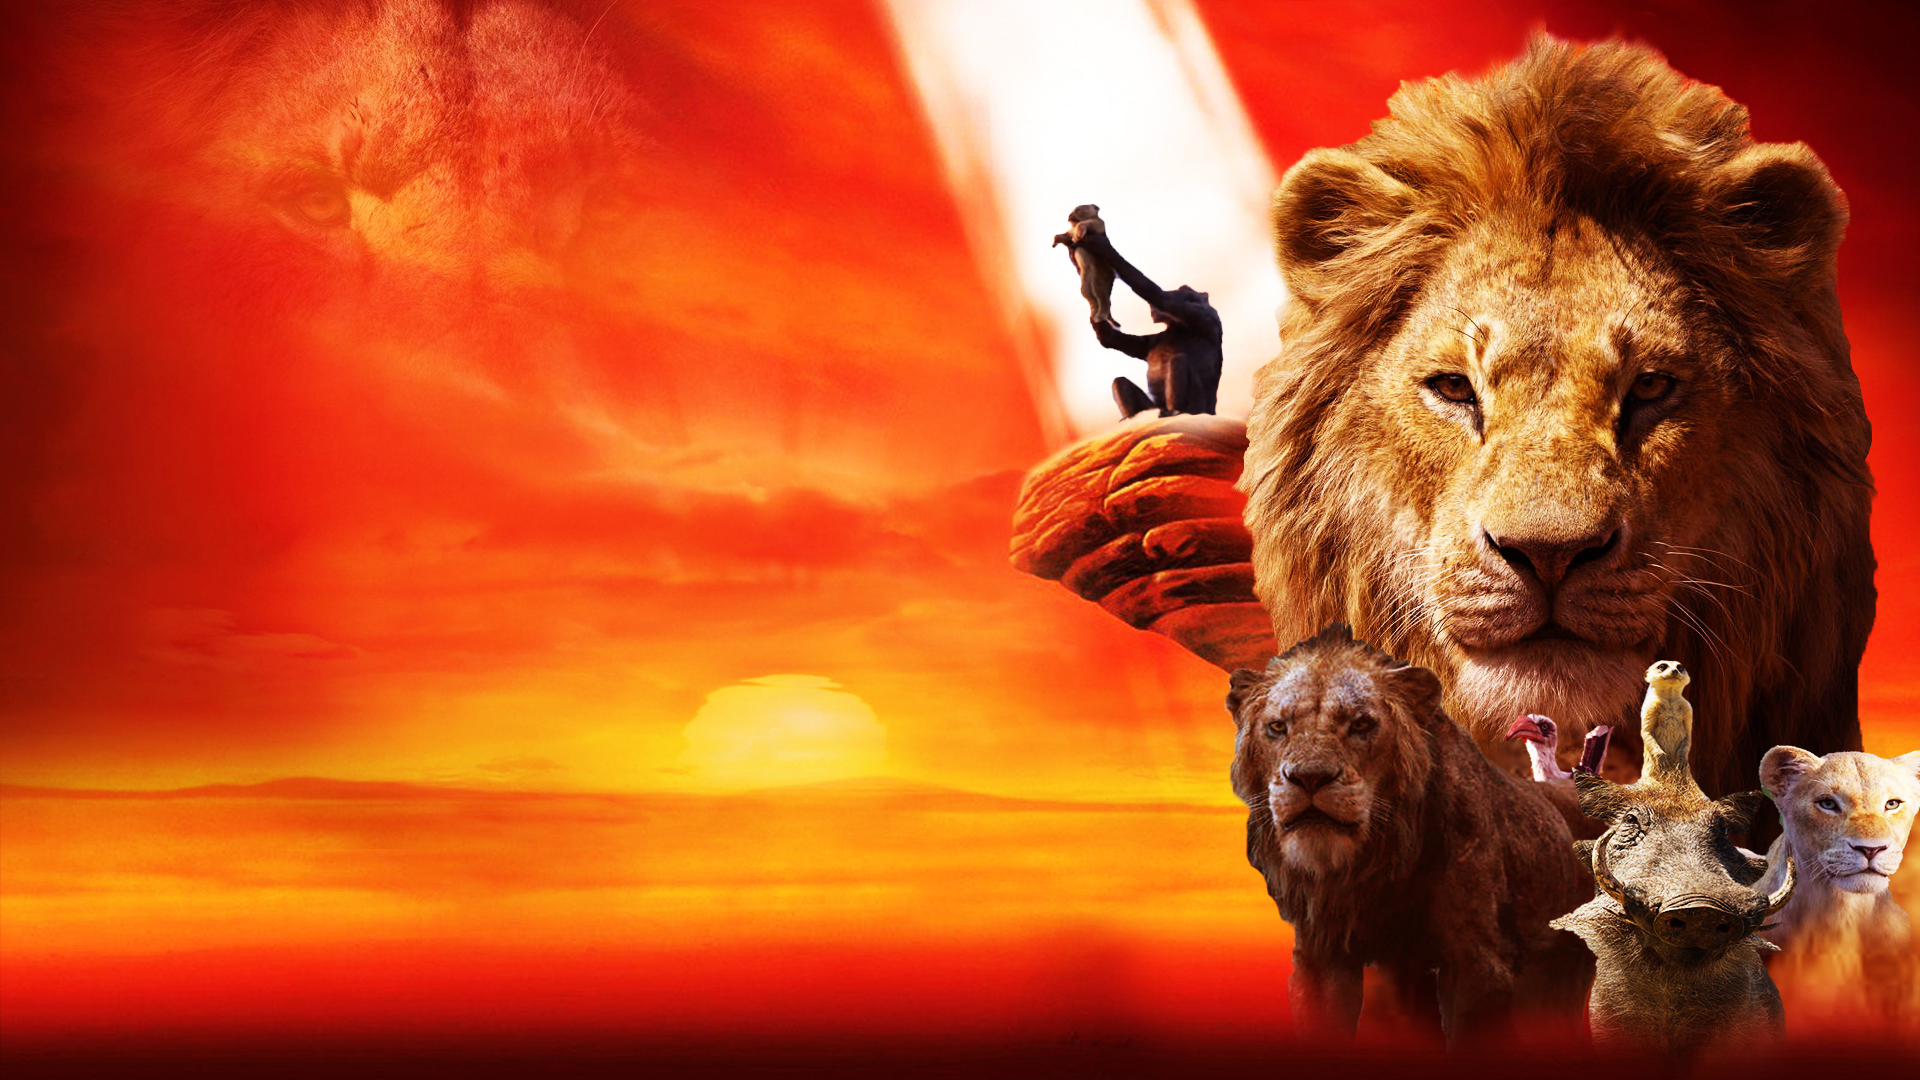 The Lion King 2019 Wallpaper By The Dark Mamba 995 - Lion King Wallpapers 2019 , HD Wallpaper & Backgrounds